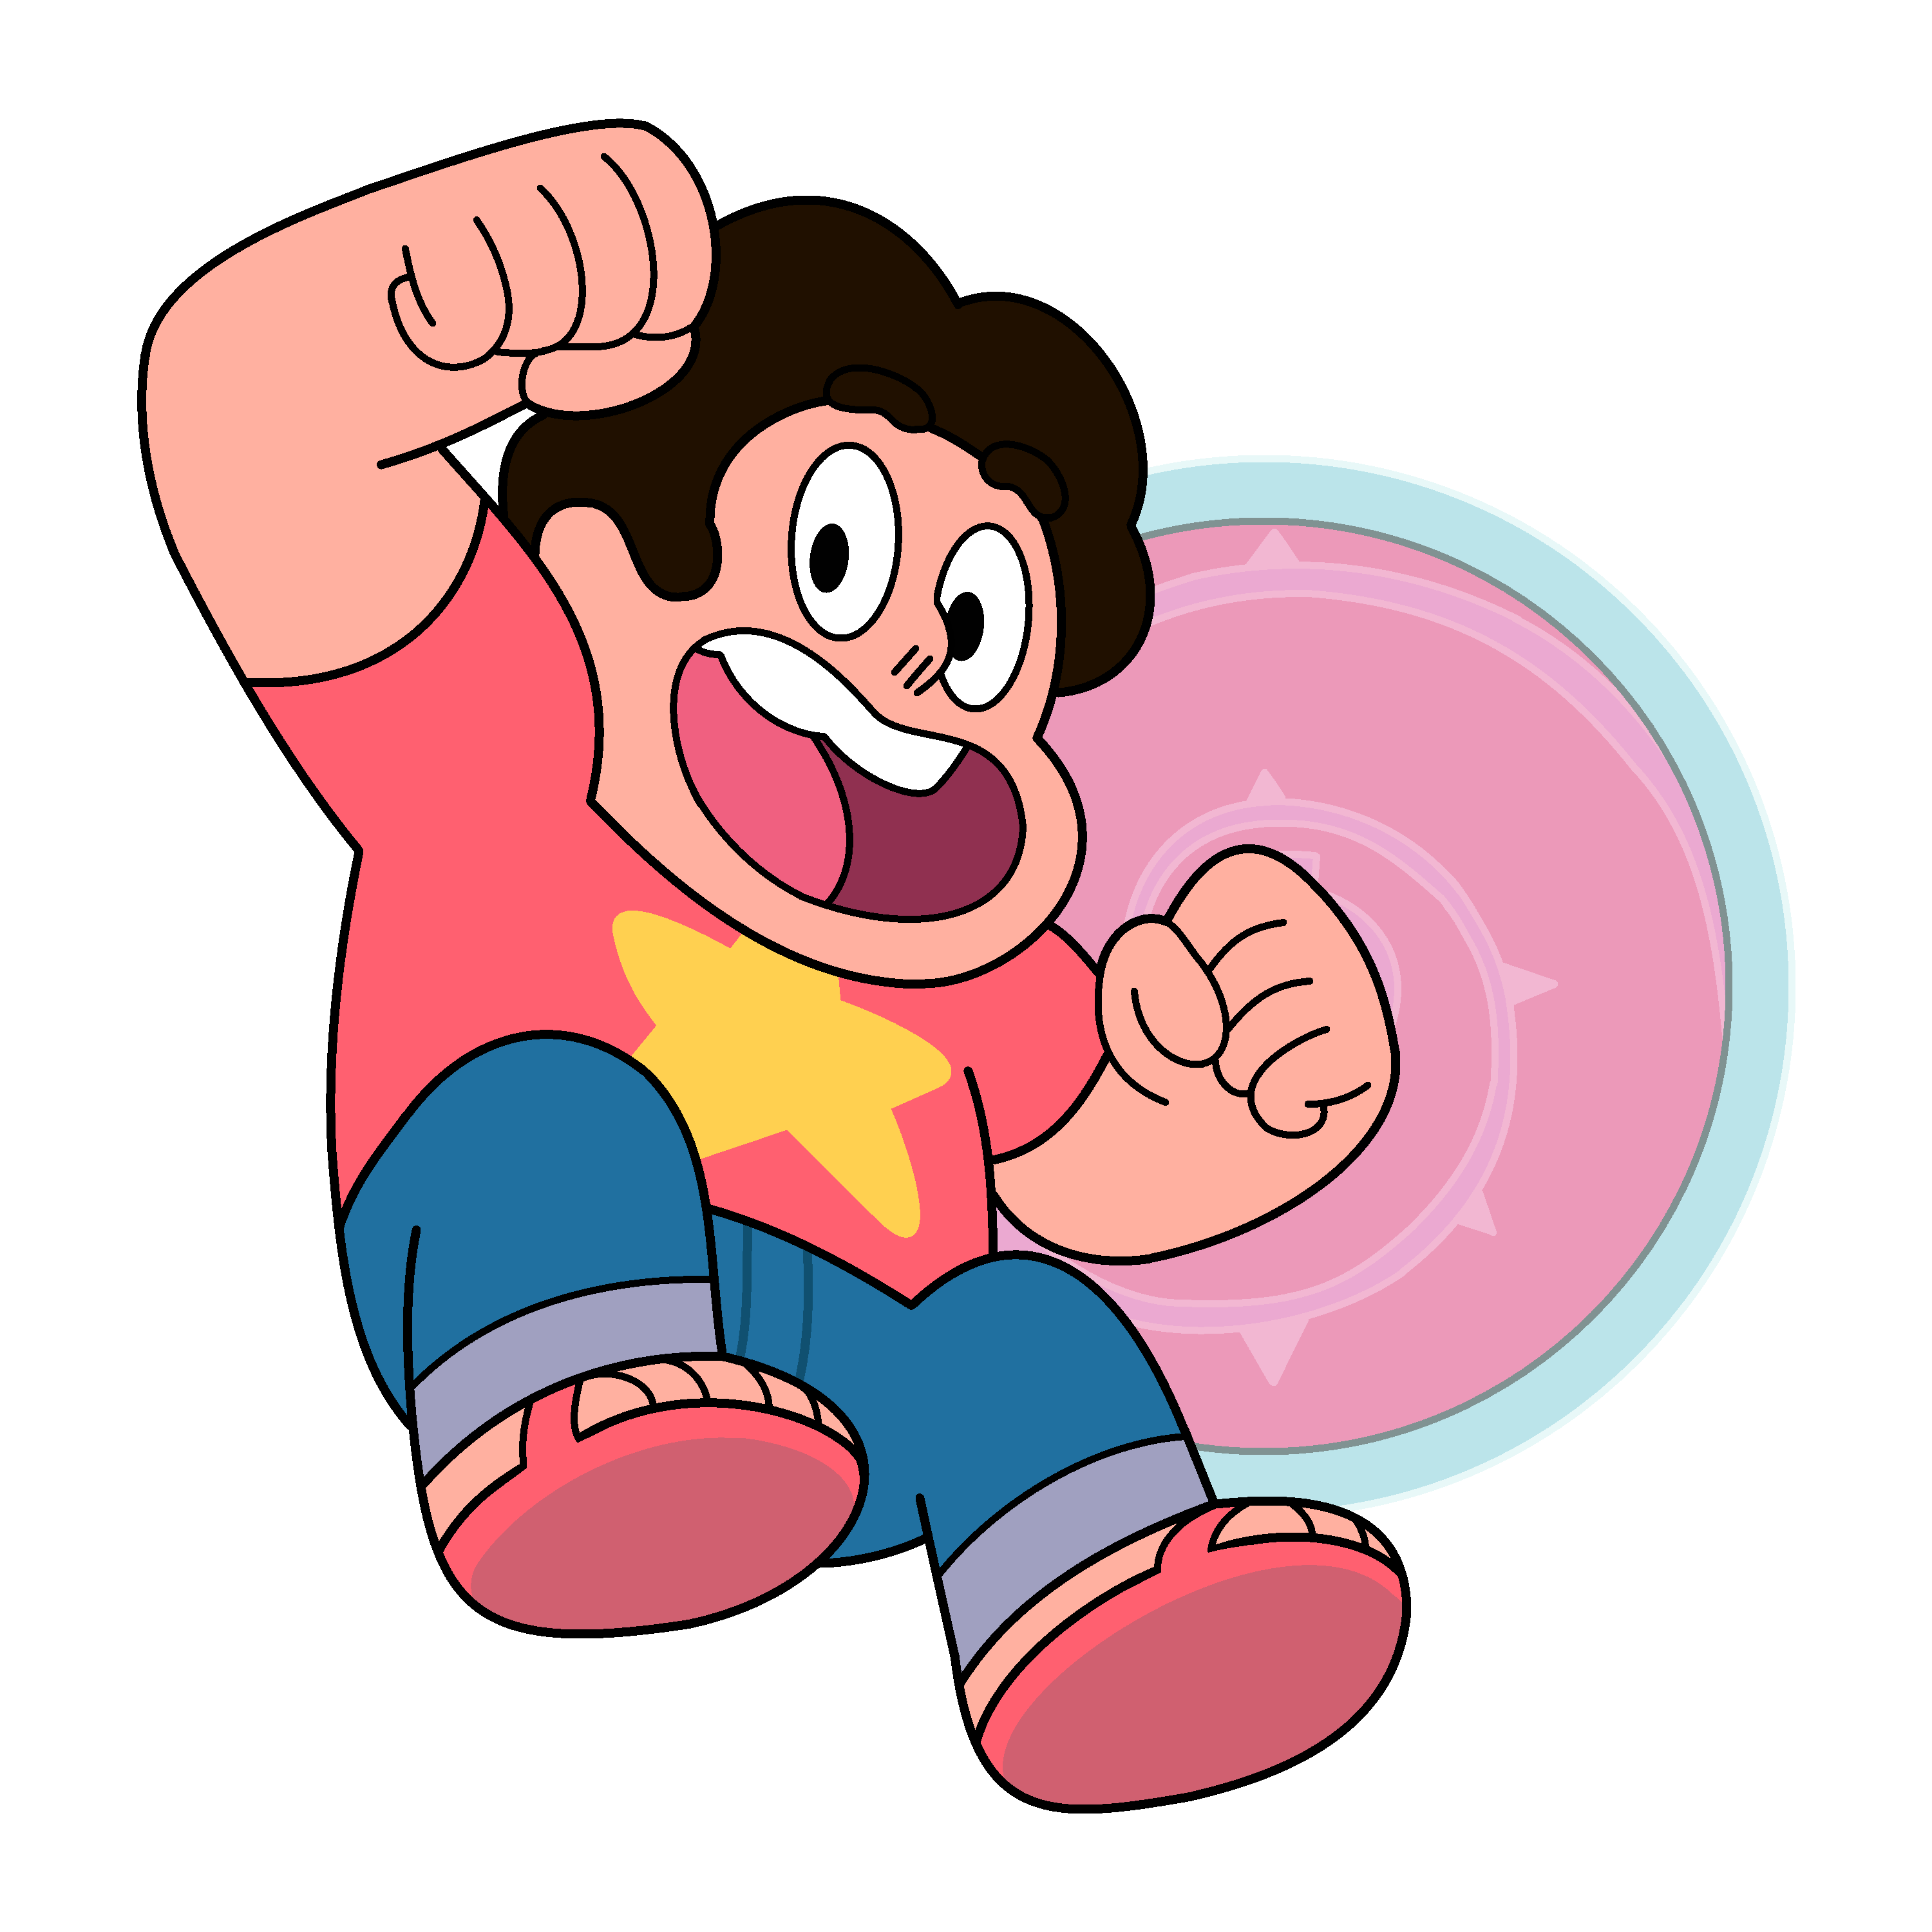 Steven universe character fanon. Worry clipart distraught